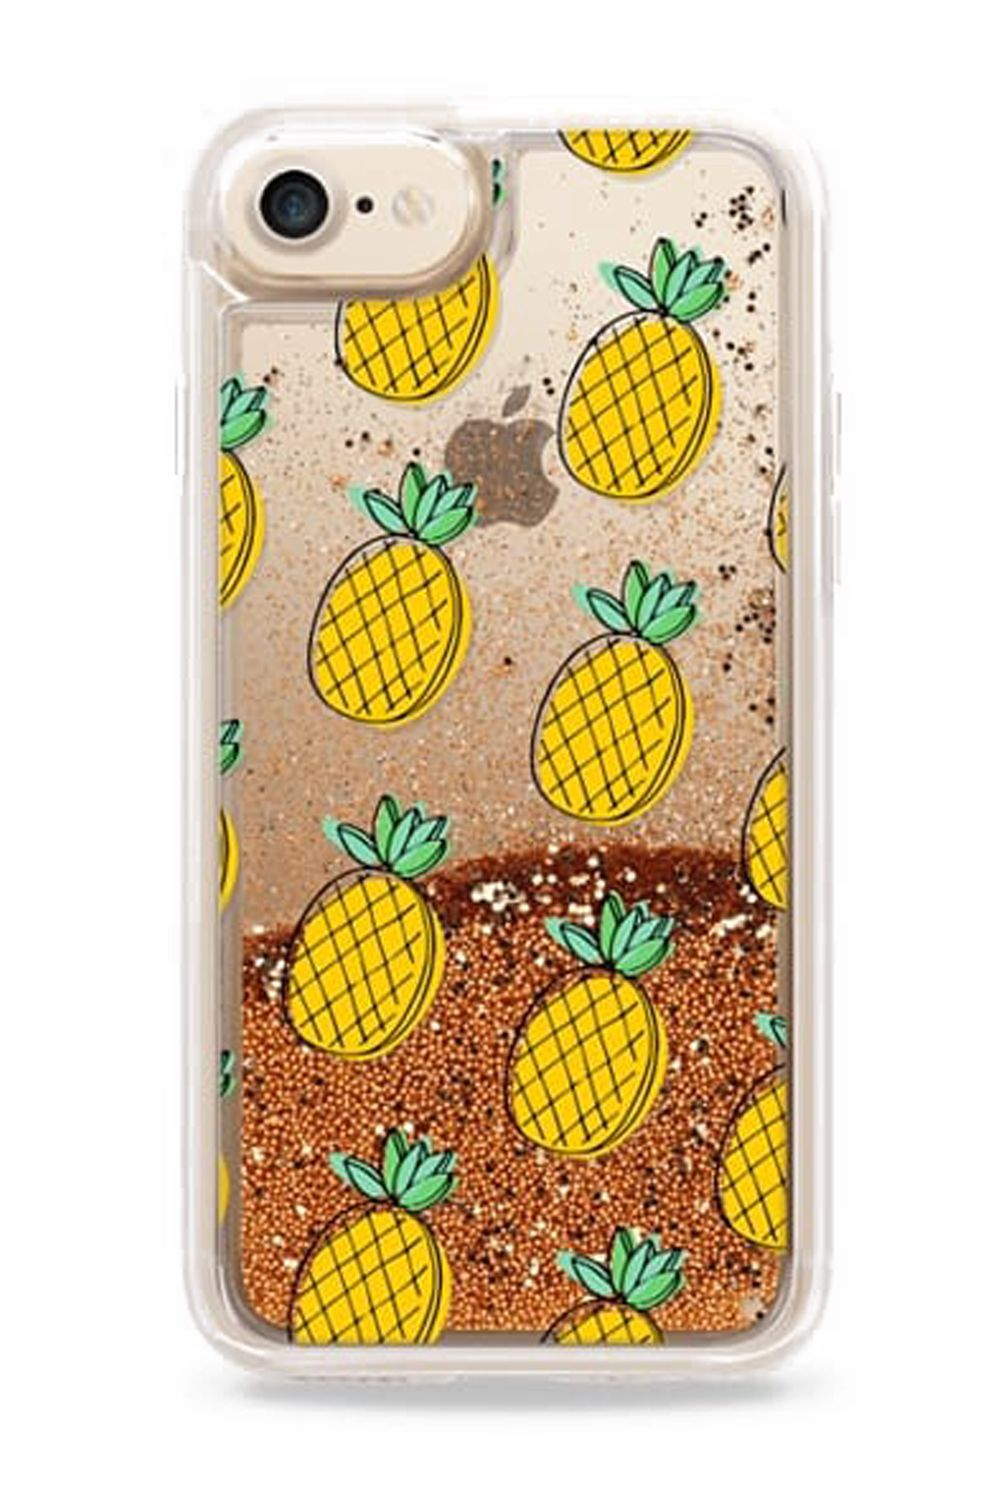 "<p>They're in my head. They're on my phone. They're on pillows and towels and ties, because pineapples are the It fruit, and there's no escaping them.</p><p><em data-redactor-tag=""em"" data-verified=""redactor"">Casetify, $45</em></p><p><strong data-redactor-tag=""strong"" data-verified=""redactor"">BUY IT: </strong><span class=""redactor-invisible-space"" data-verified=""redactor"" data-redactor-tag=""span"" data-redactor-class=""redactor-invisible-space""><strong data-redactor-tag=""strong"" data-verified=""redactor""><a href=""https://www.casetify.com/product/Pnare_pineapples/iphone8/glitter-case-gold-chrome?color=gold#/530600"" target=""_blank"" data-tracking-id=""recirc-text-link"">casetify.com</a>.</strong></span><br></p>"